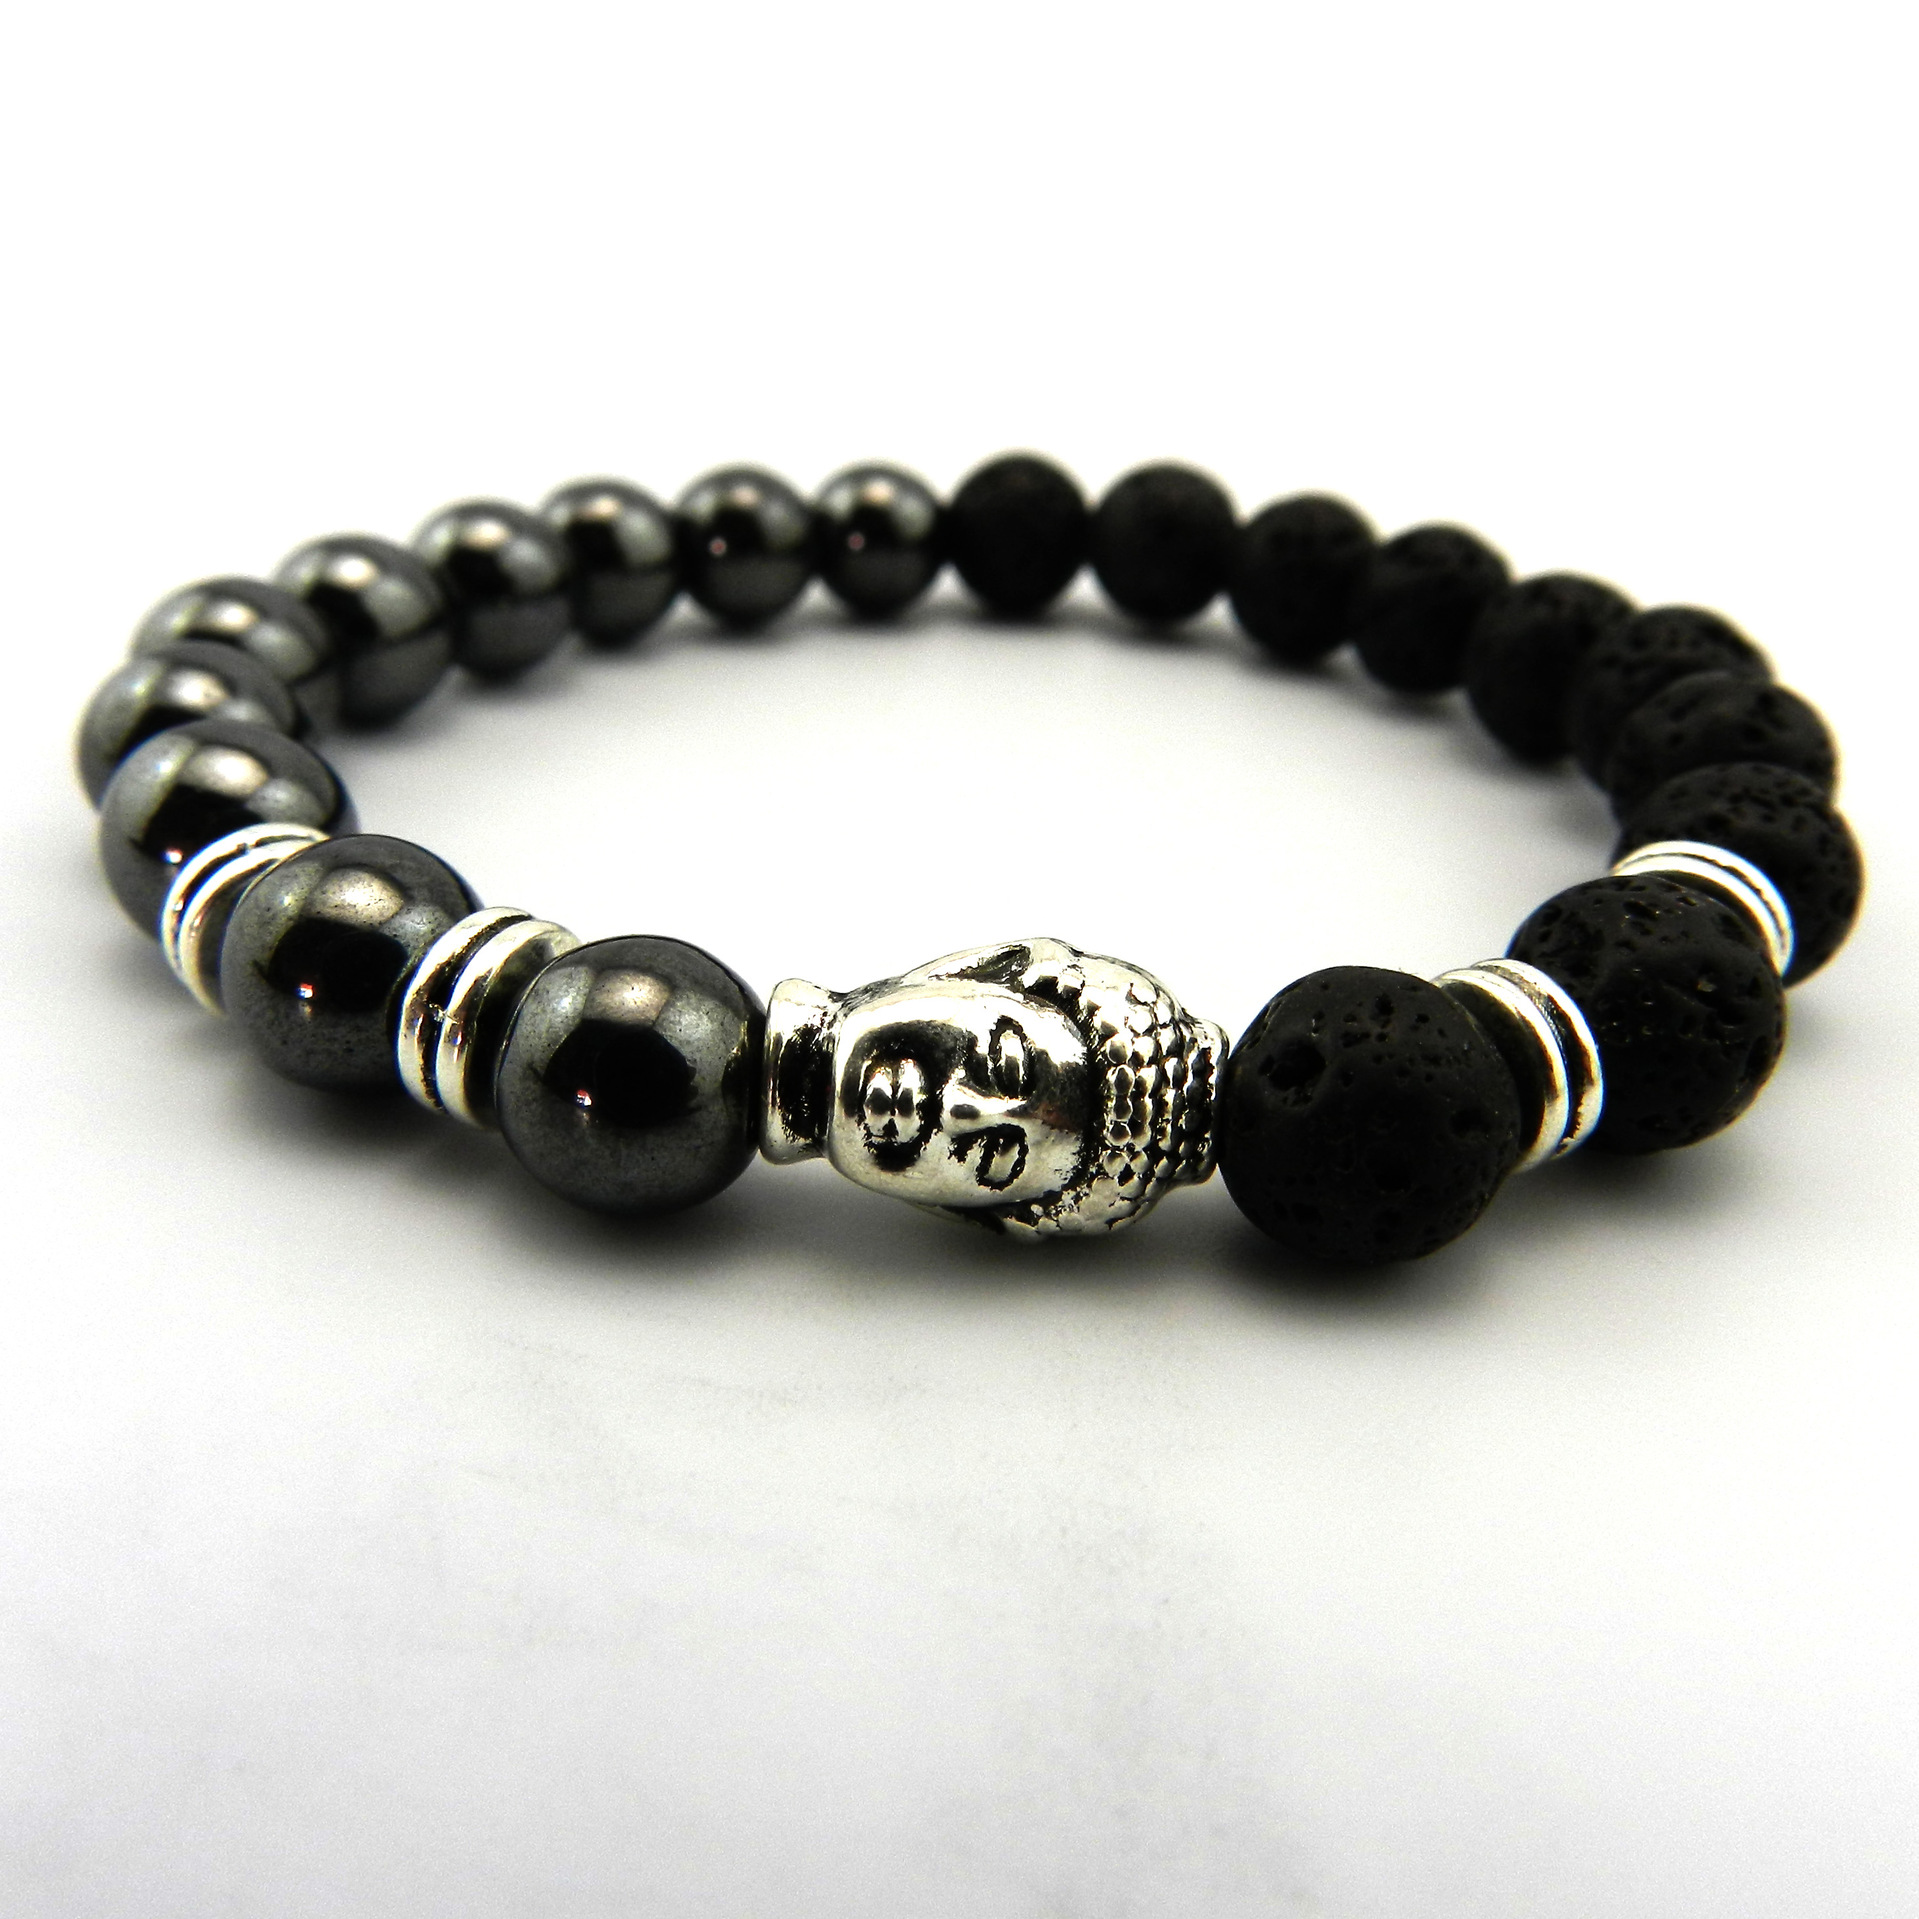 5pcs Handmade 8mm Volcano Lava Beads Bracelet Natural Stone Beads Buddha head Yoga Bracelet Jewelry Gift For Men Christmas